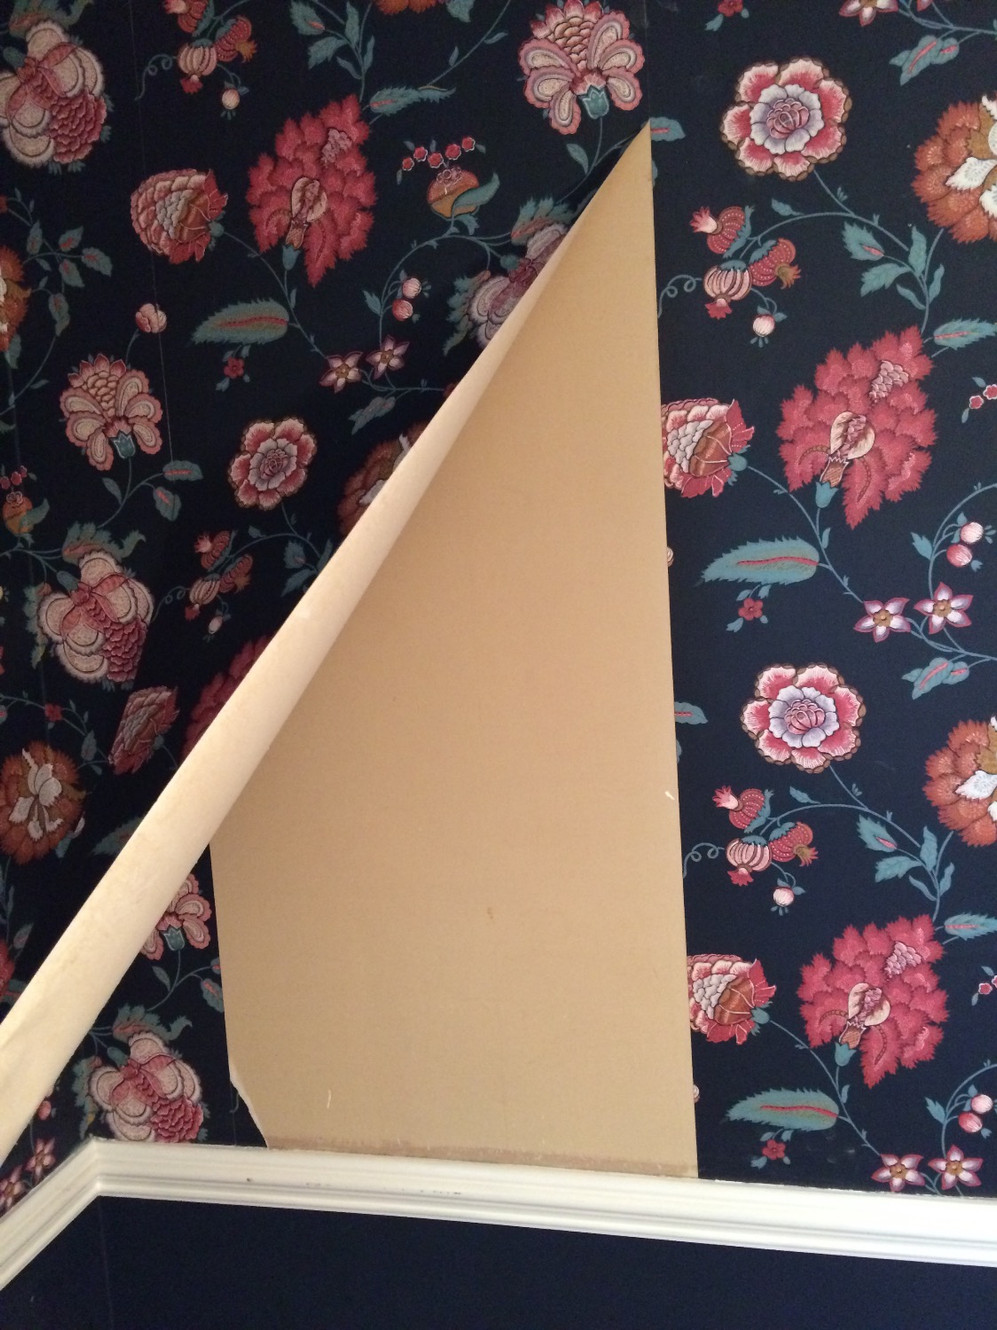 How much does it cost to remove wallpaper in Salisbury, MD?